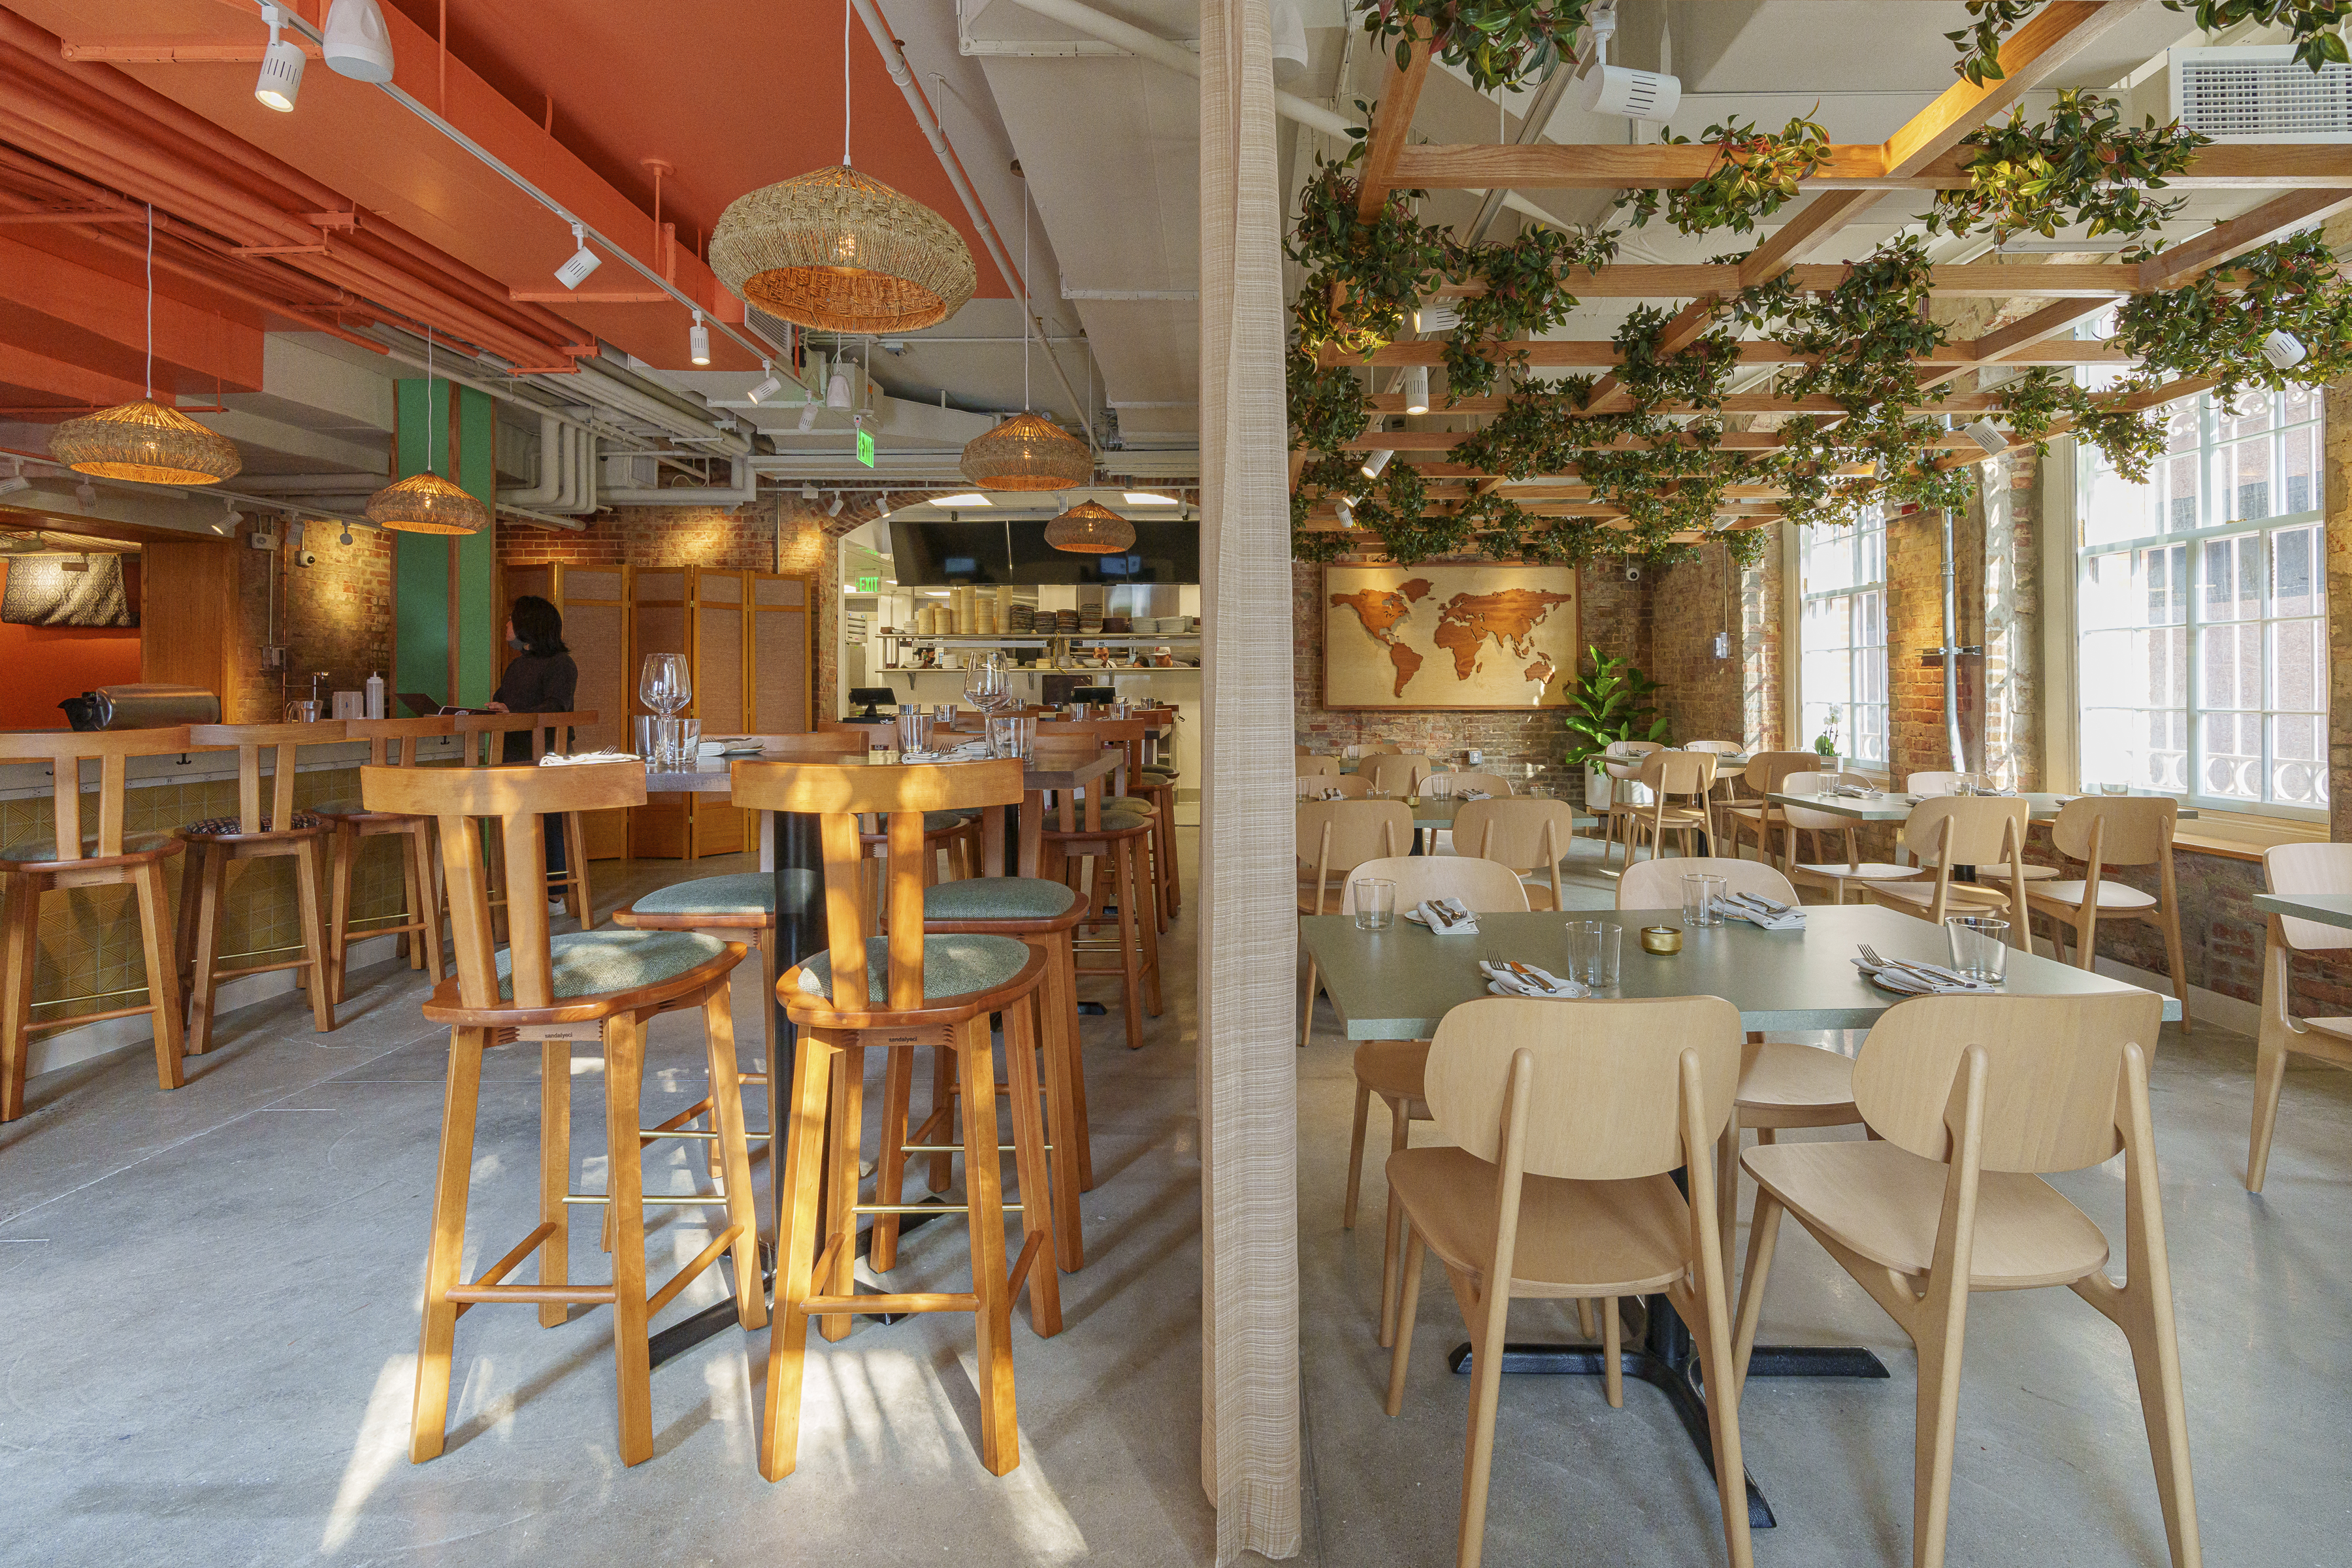 Sections of the dining room at Immigrant Food + are split between an orange ceiling and wooden frames with hanging plants.